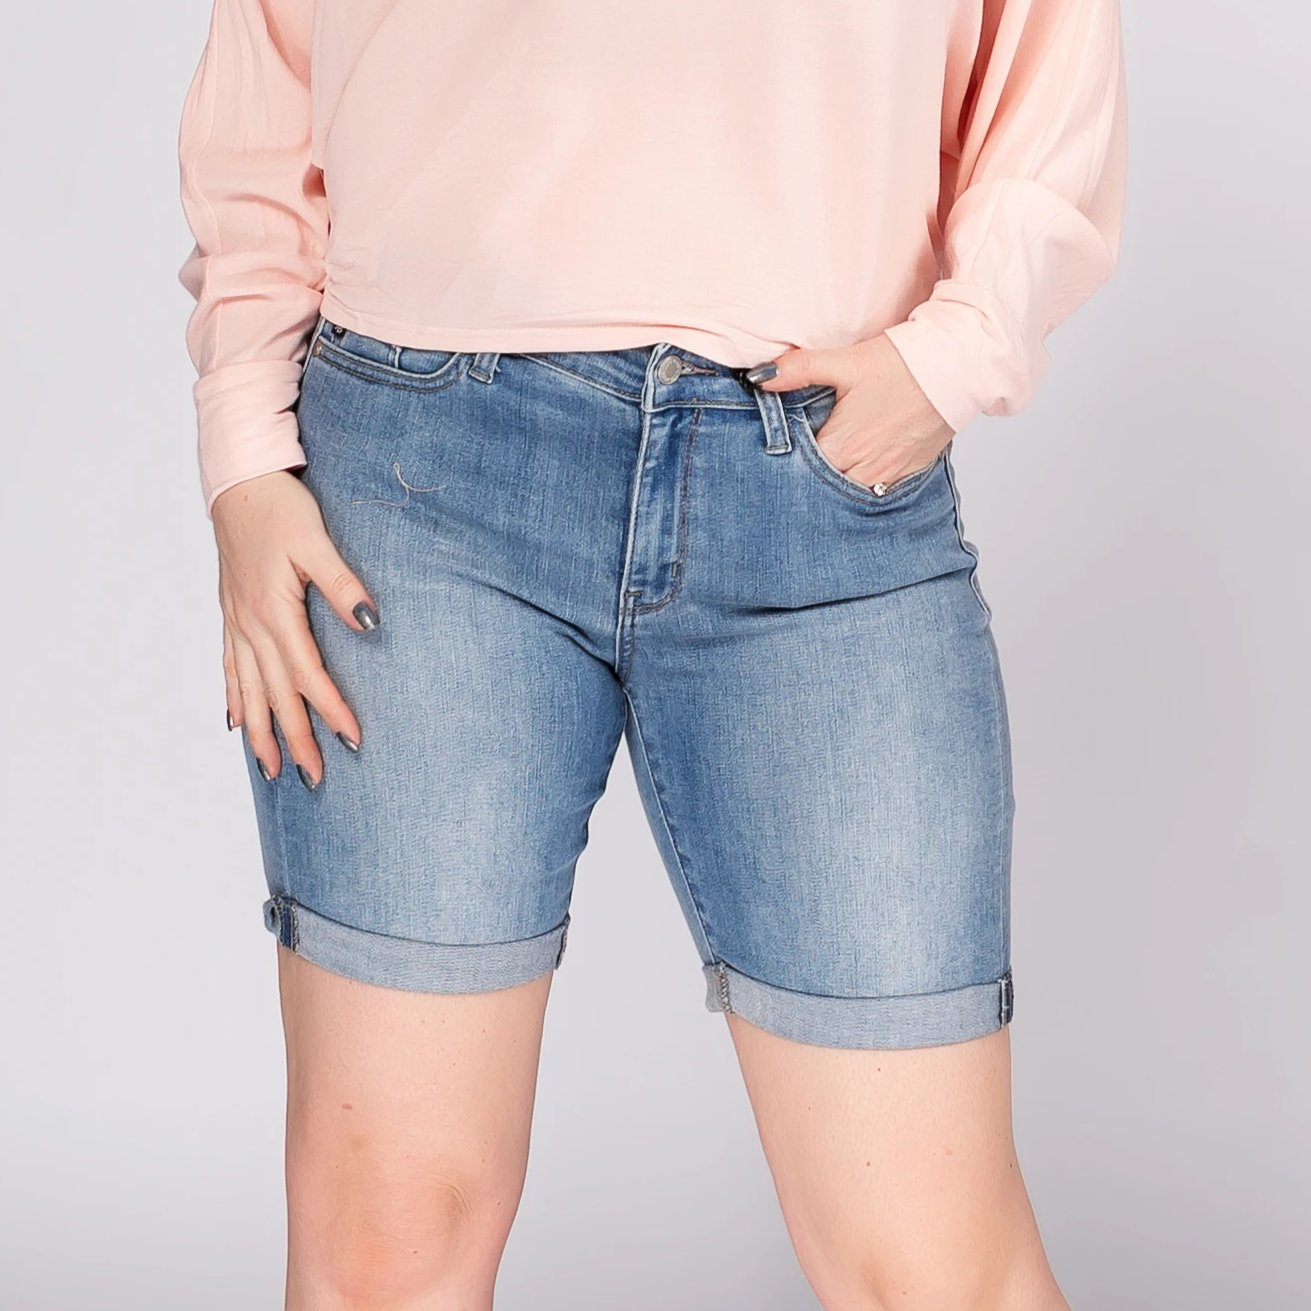 Judy Blue Cuffed Bermuda Shorts *Final Sale*